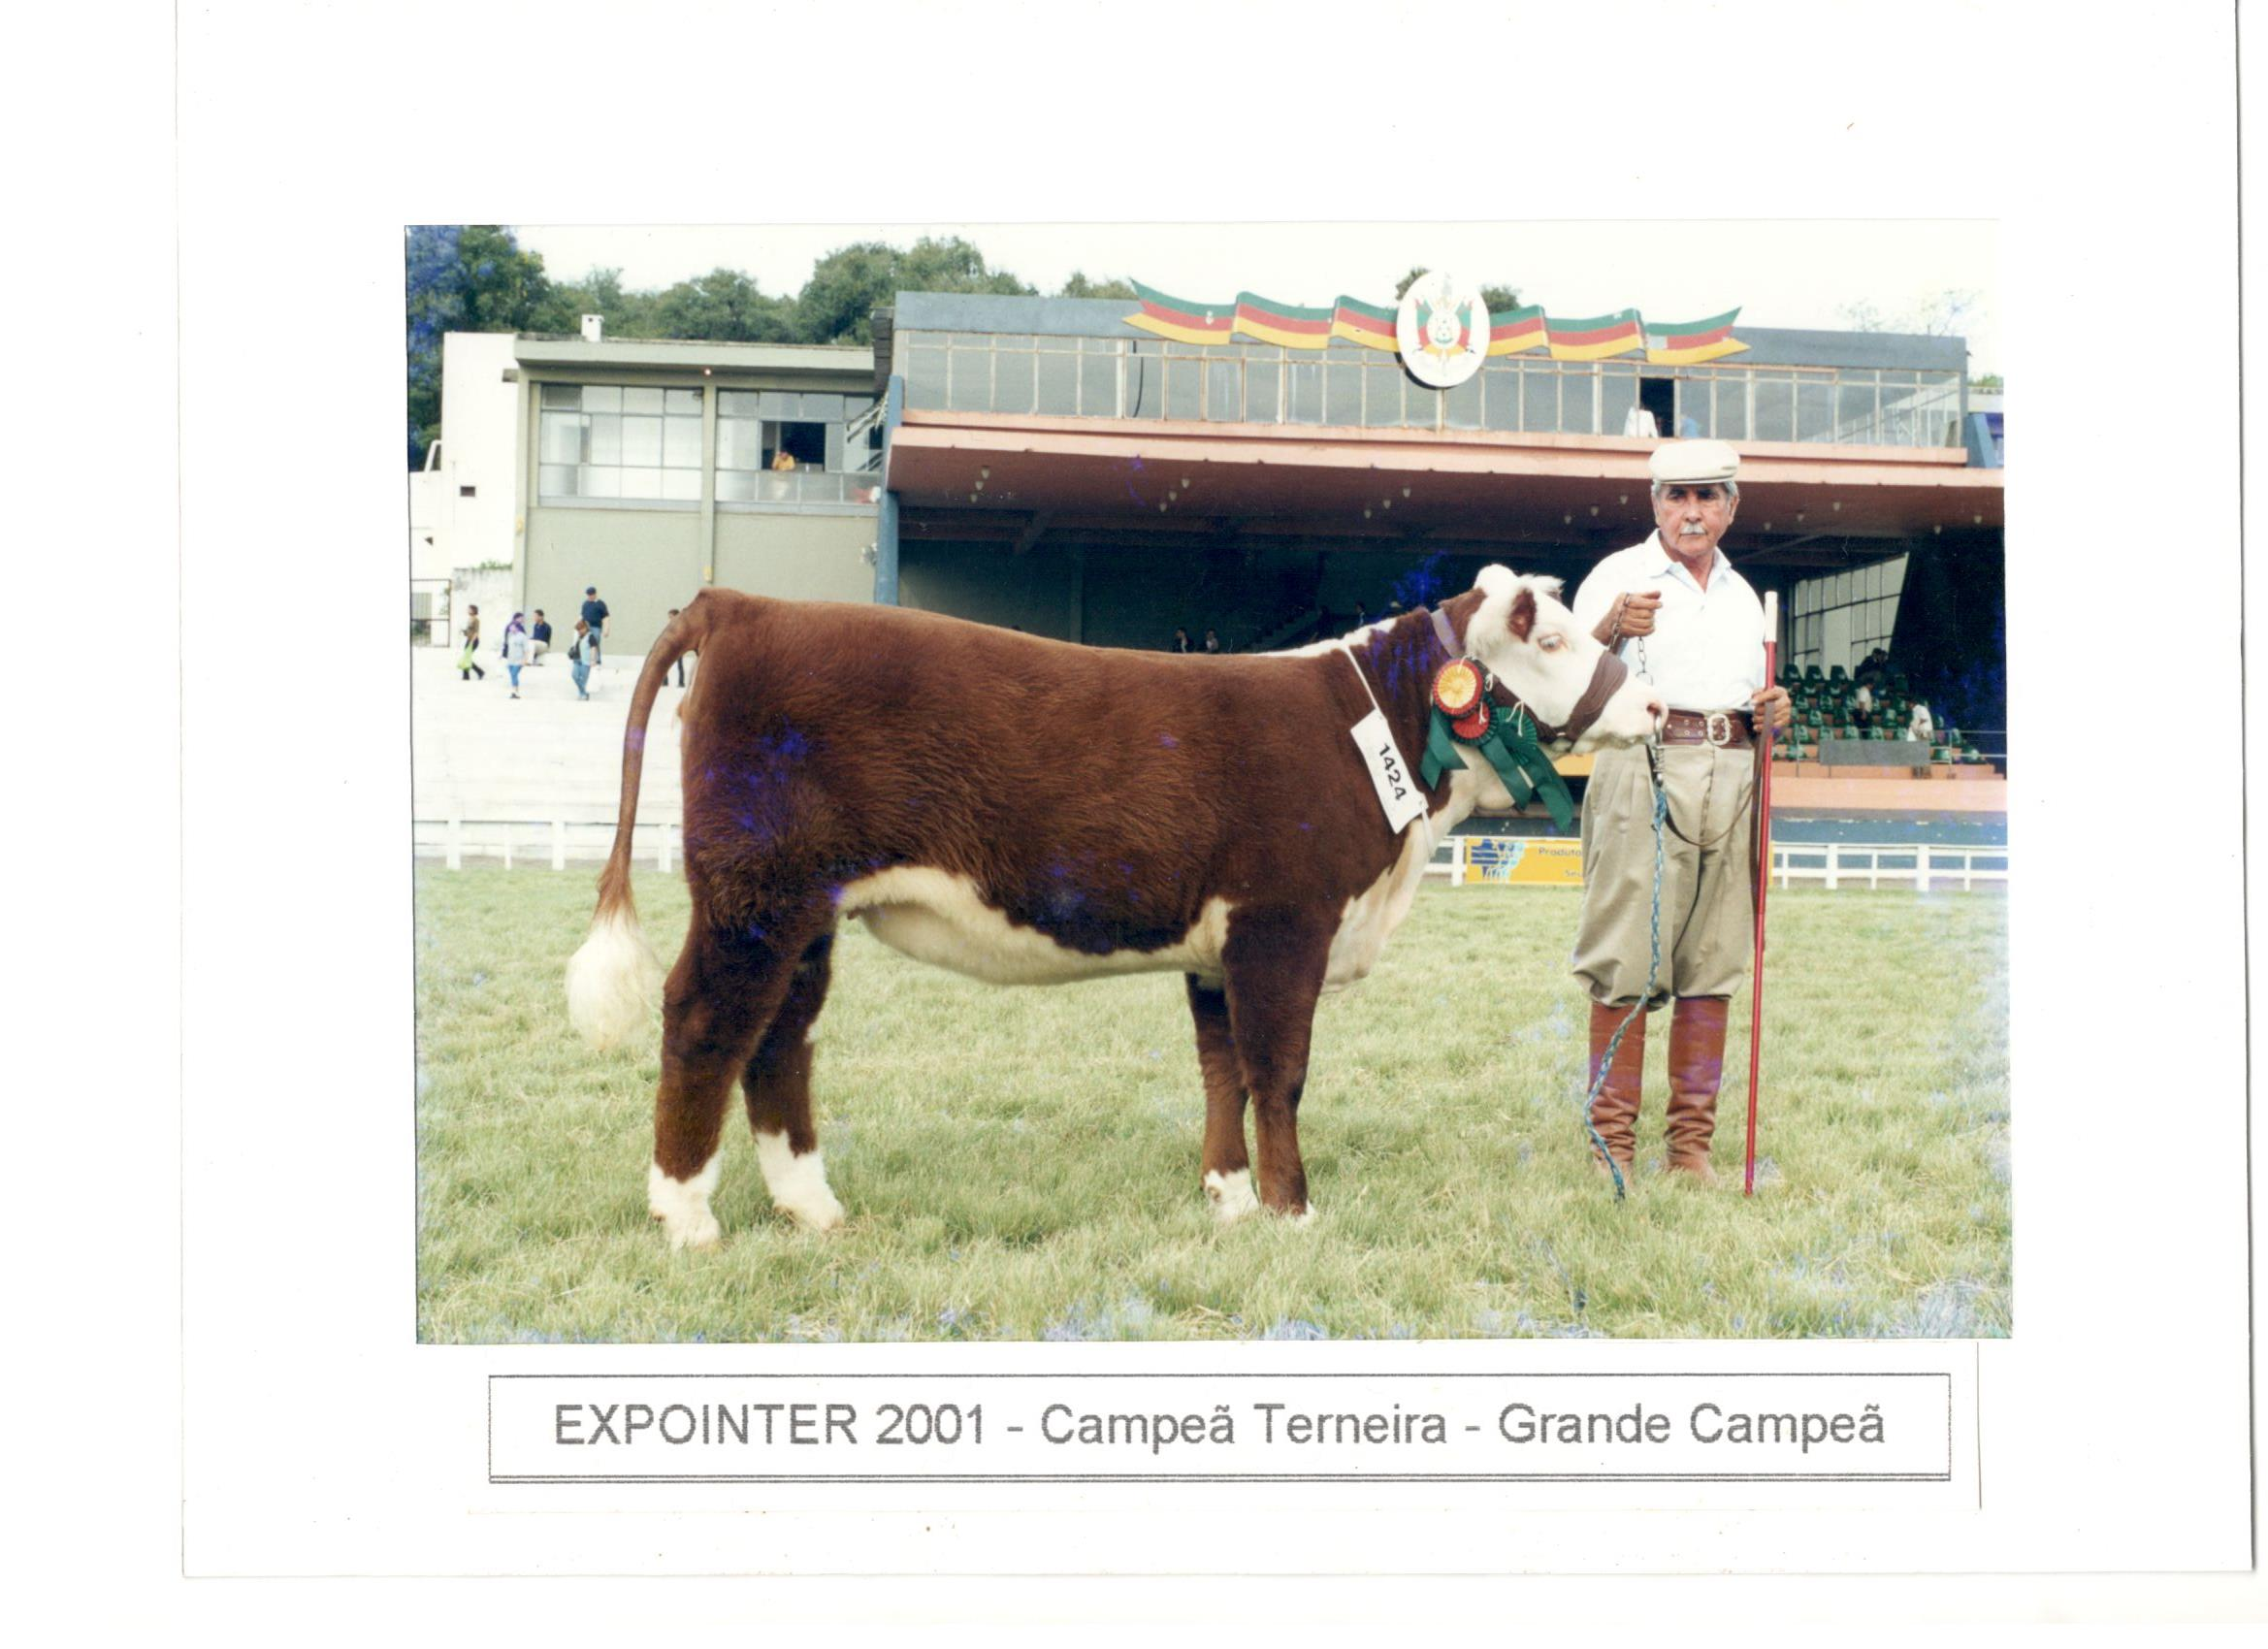 EXPOINTER_2001-_CAMPEÃ_TERNEIRA